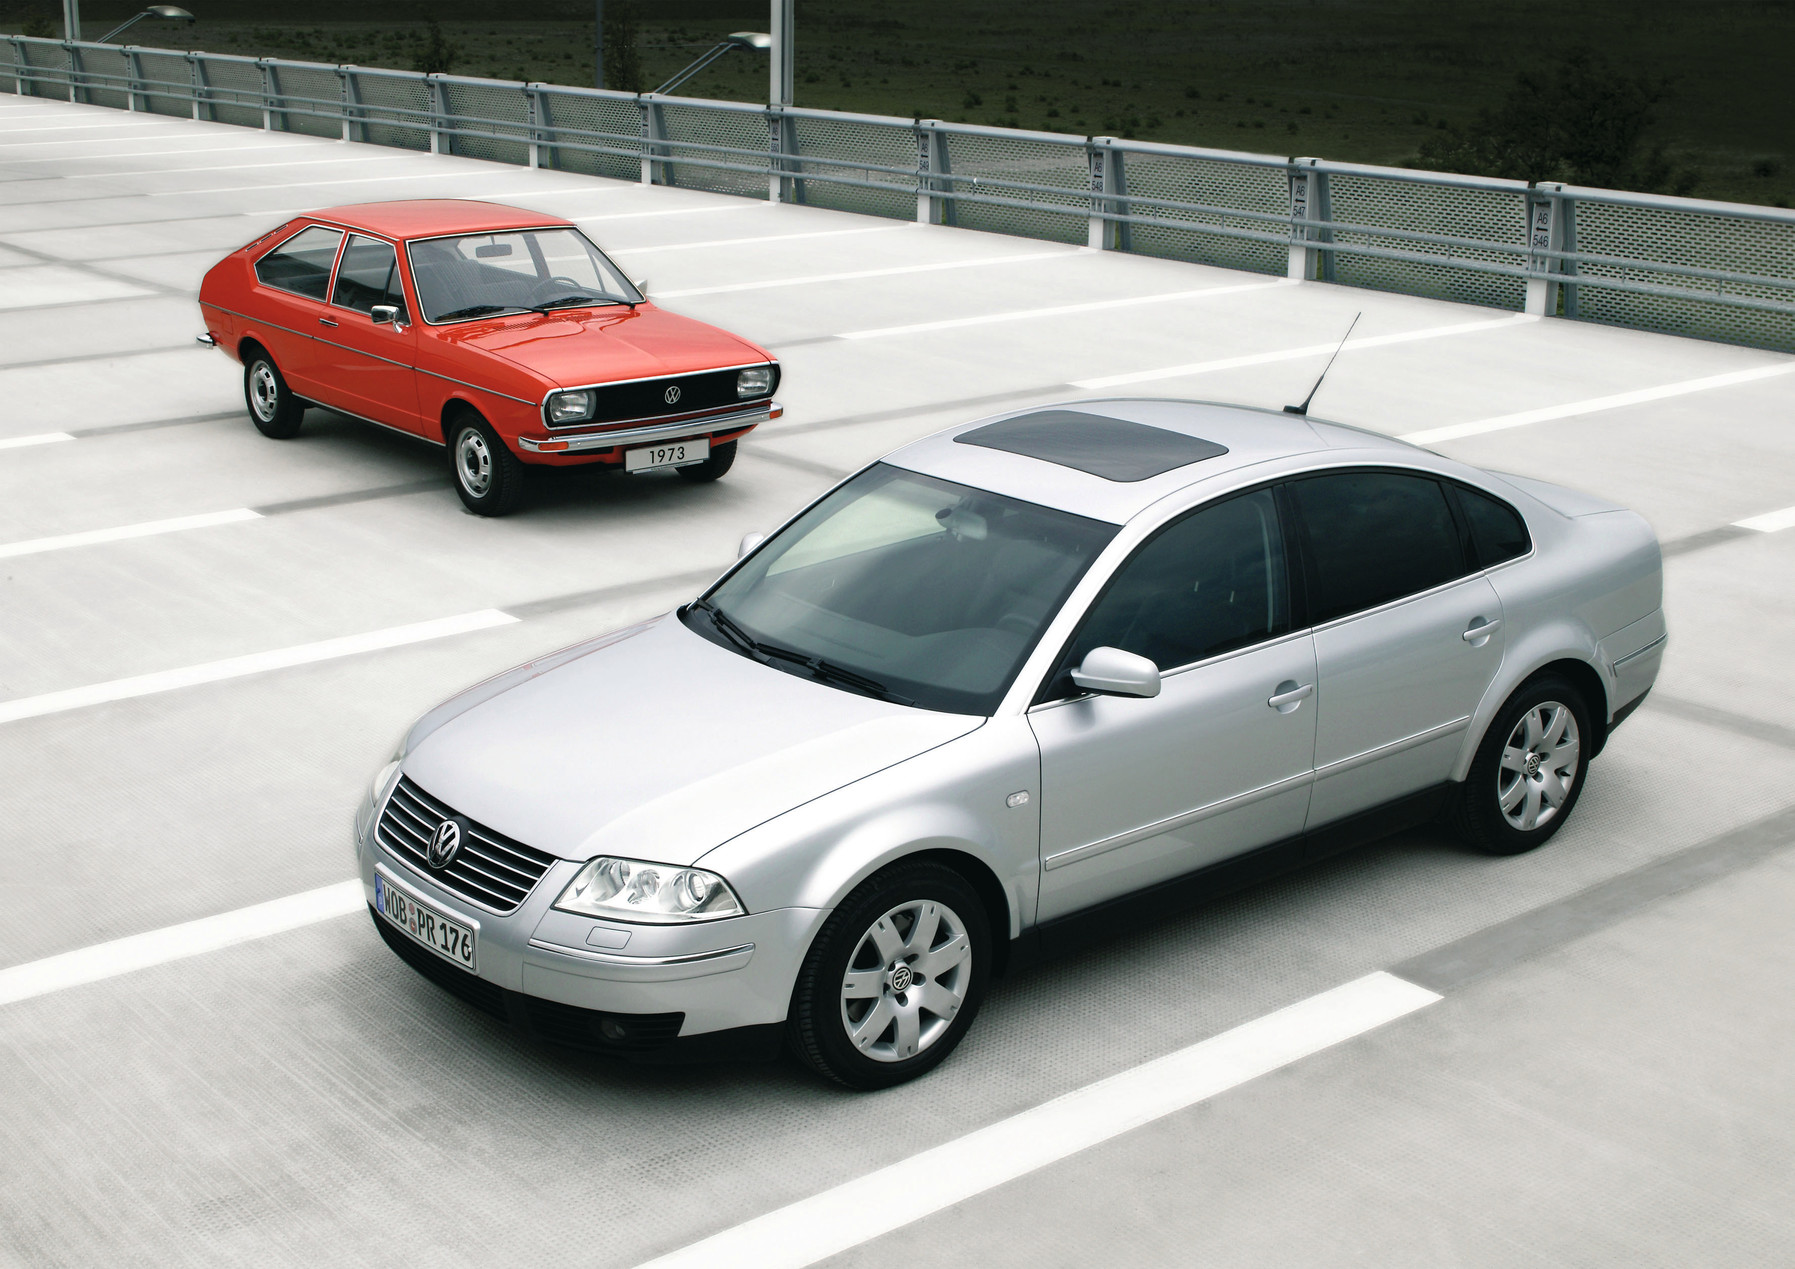 13 Million Passats: Volkswagen Passat B1, 1973, and Volkswagen Passat B5, 2003